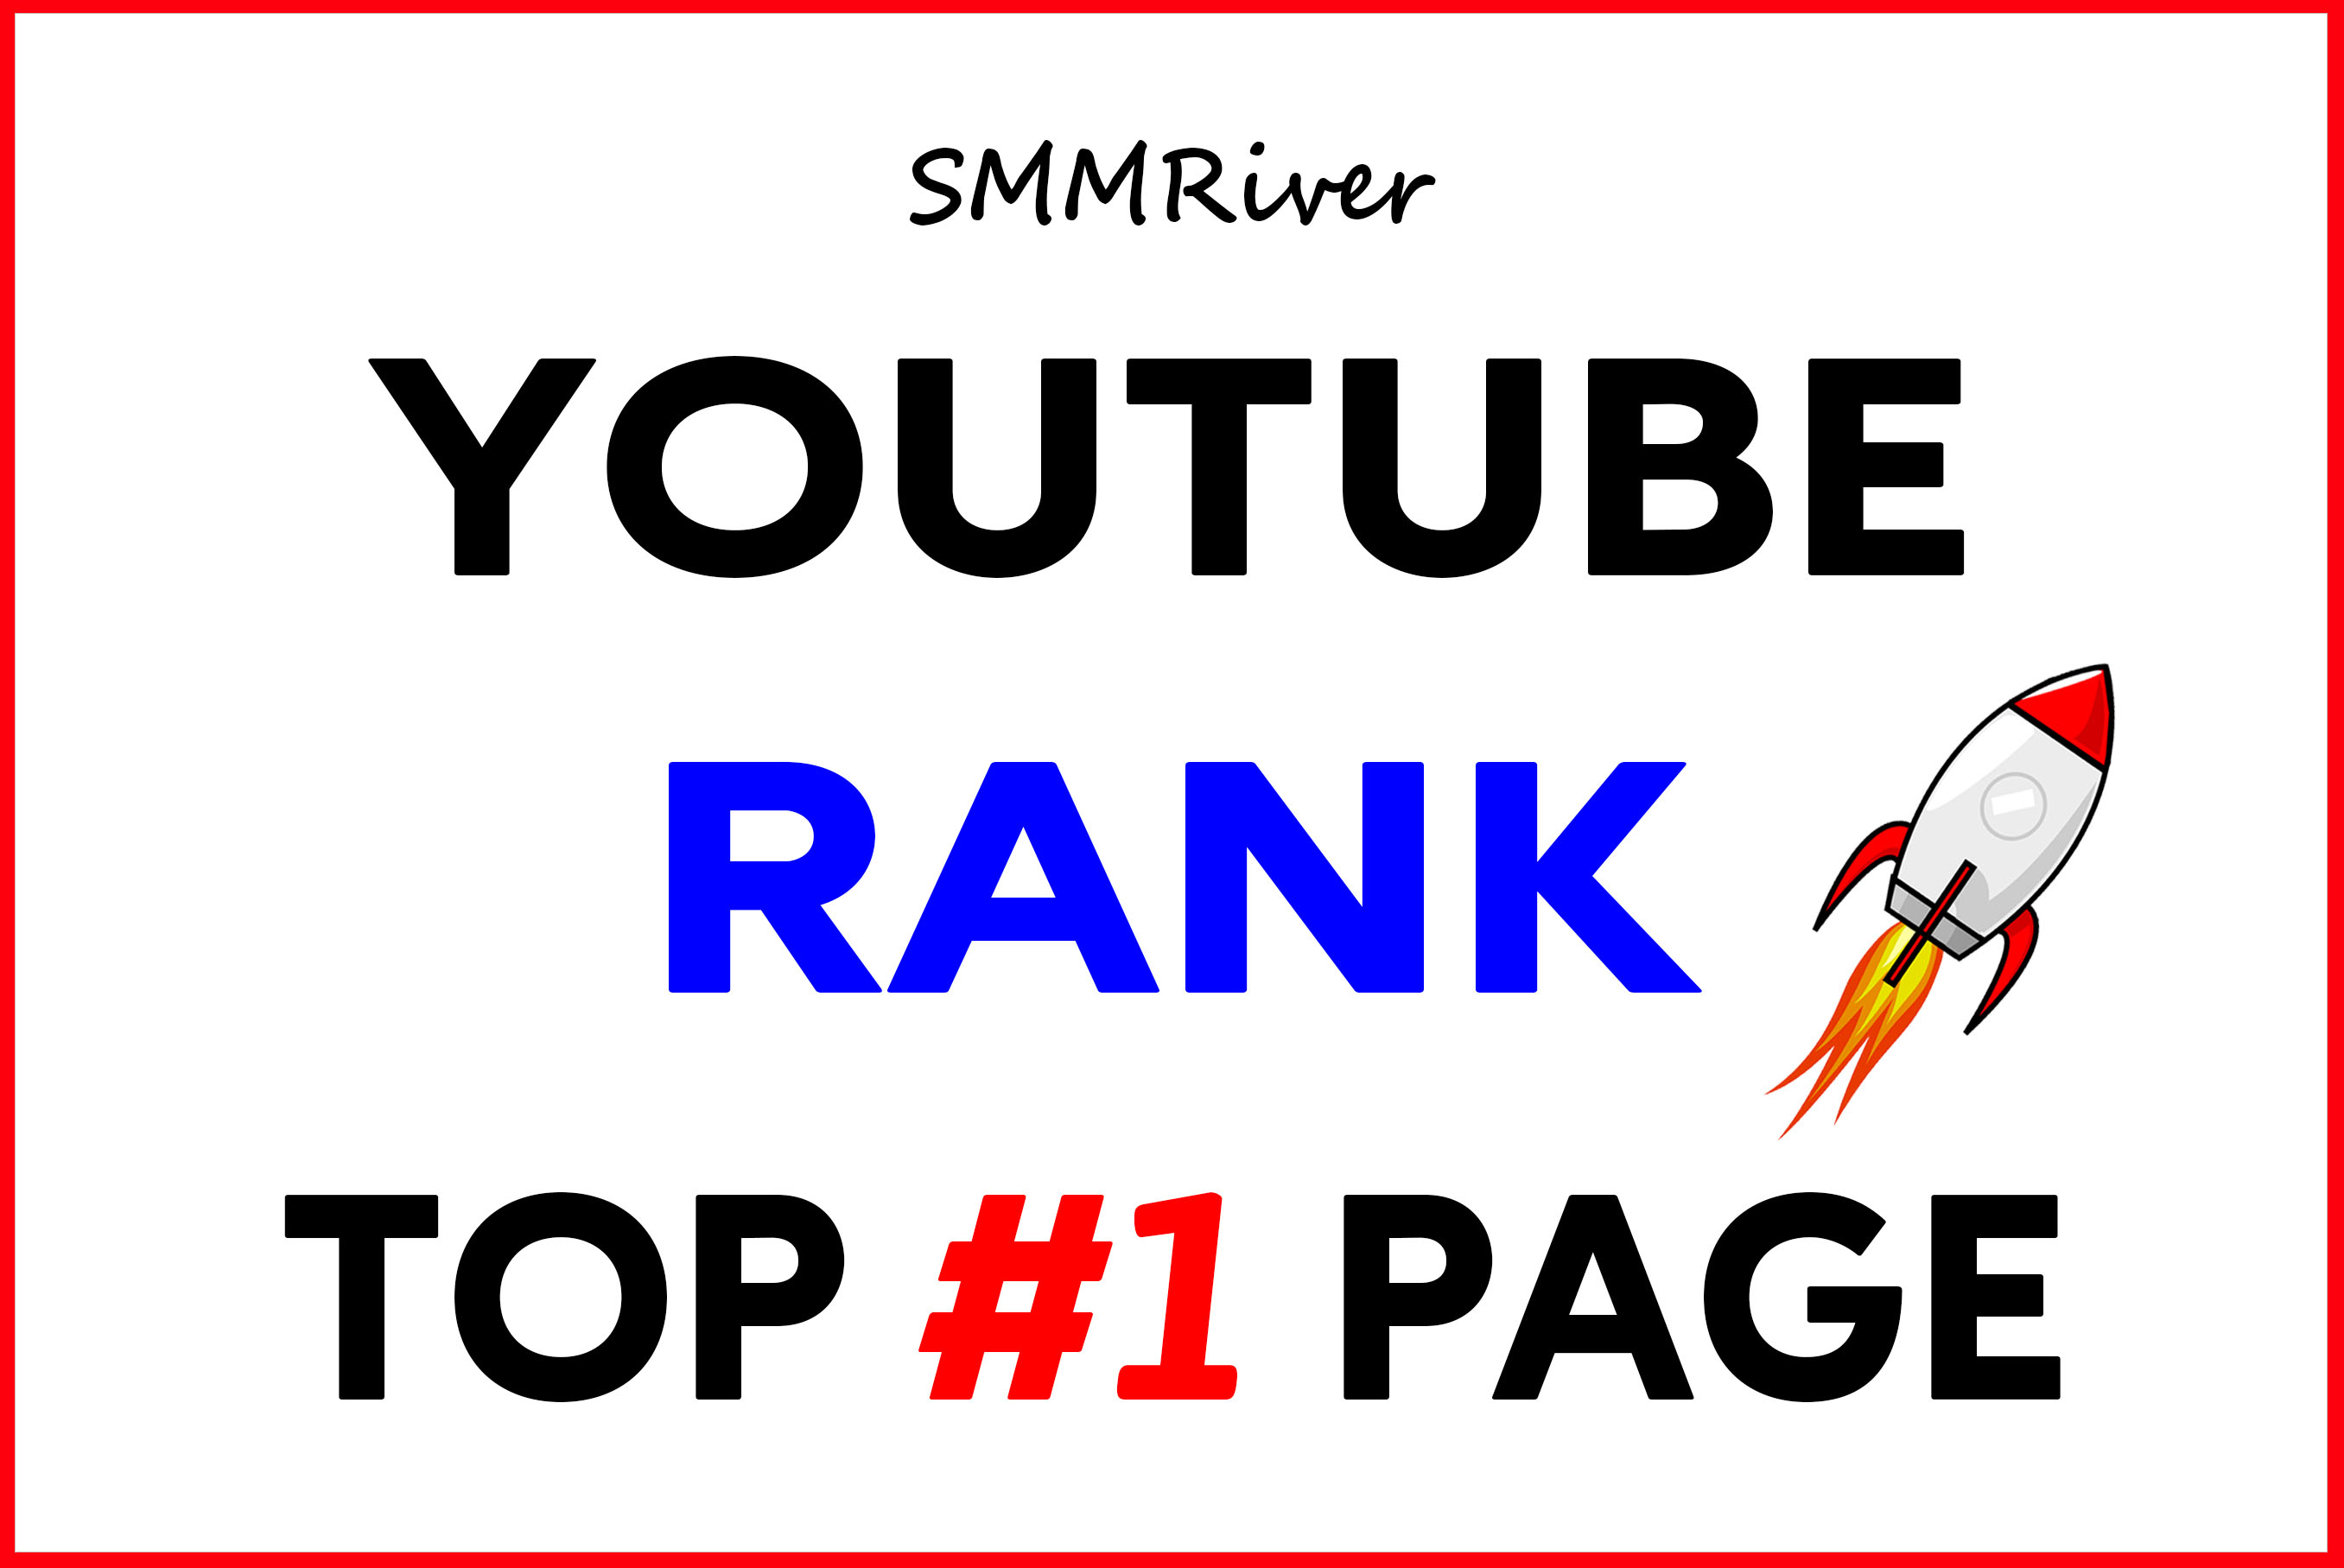 ULTIMATE YOUTUBE VIDEO RANKING TOP 1 PAGE - TOP RESULTS 2020